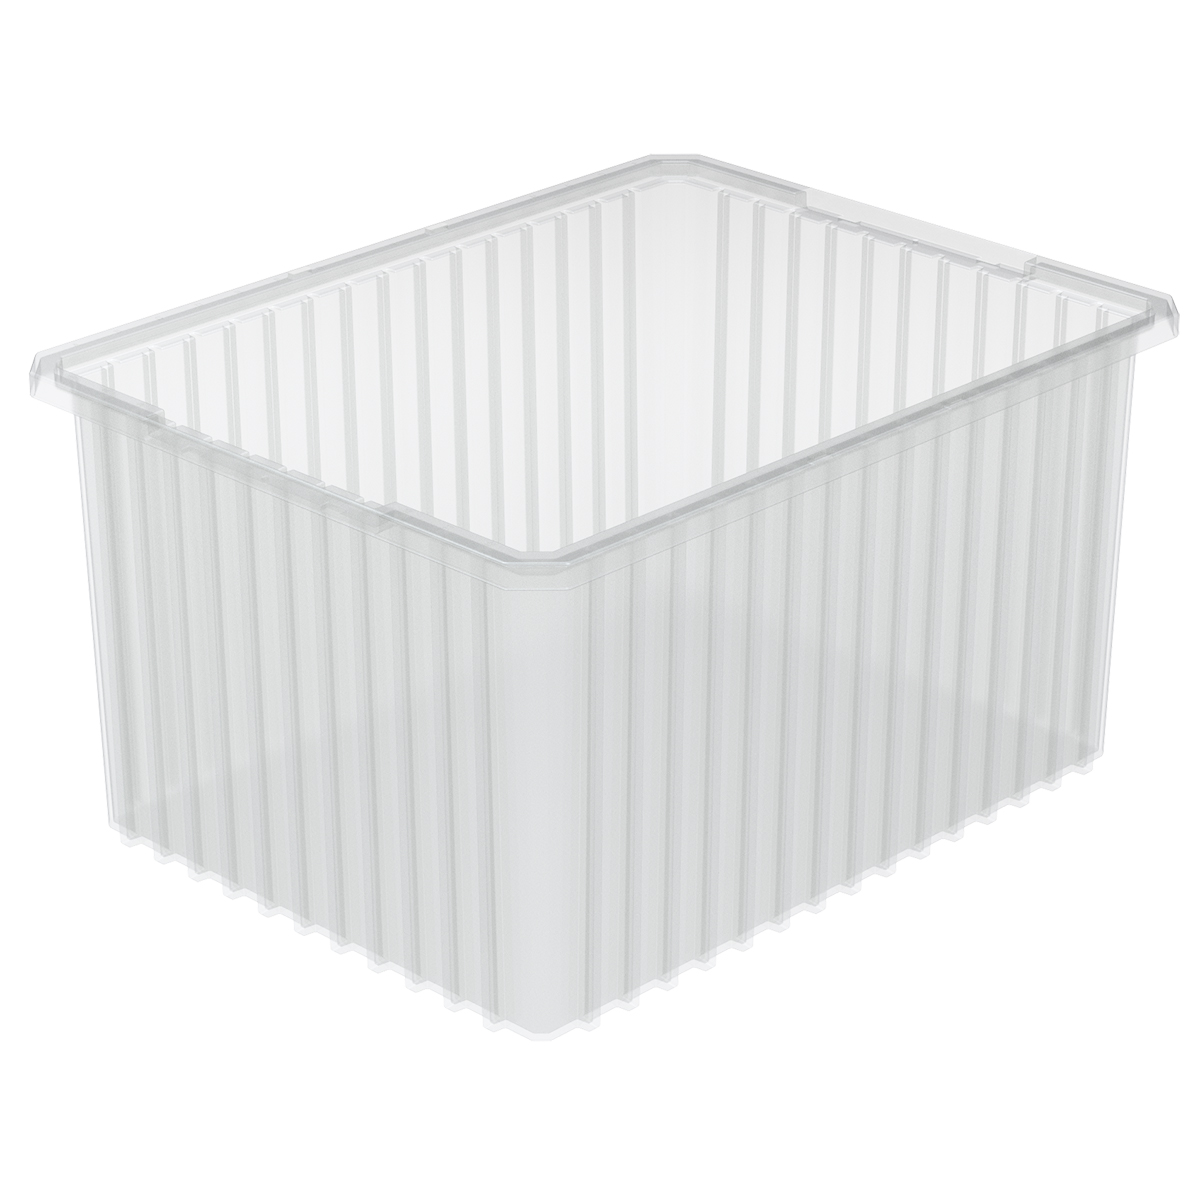 Akro-Grid Dividable Box 22-1/2 x 17-1/2 x 12, Clear.  This item sold in carton quantities of 3.